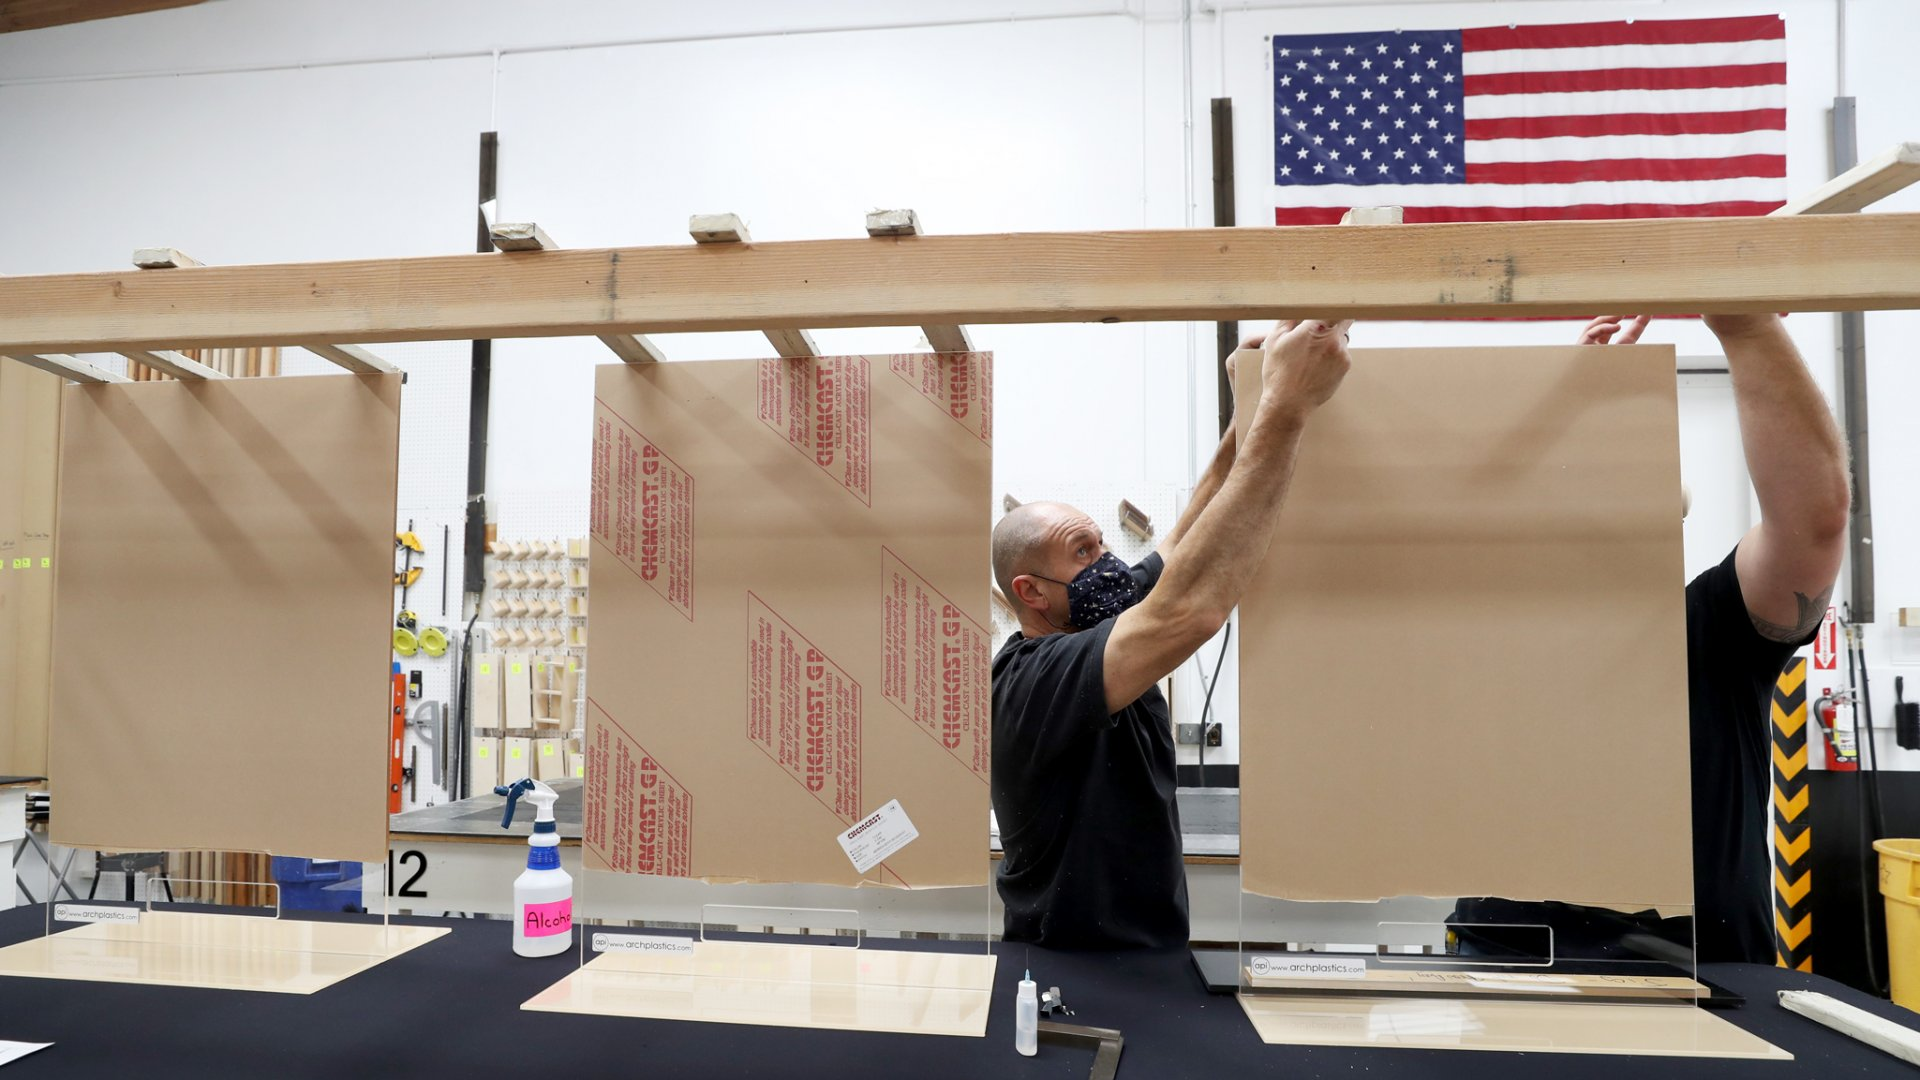 Architectural Plastics assembles acrylic sheets that will be used for social-distancing guards for businesses on May 7, 2020 in Petaluma, California.